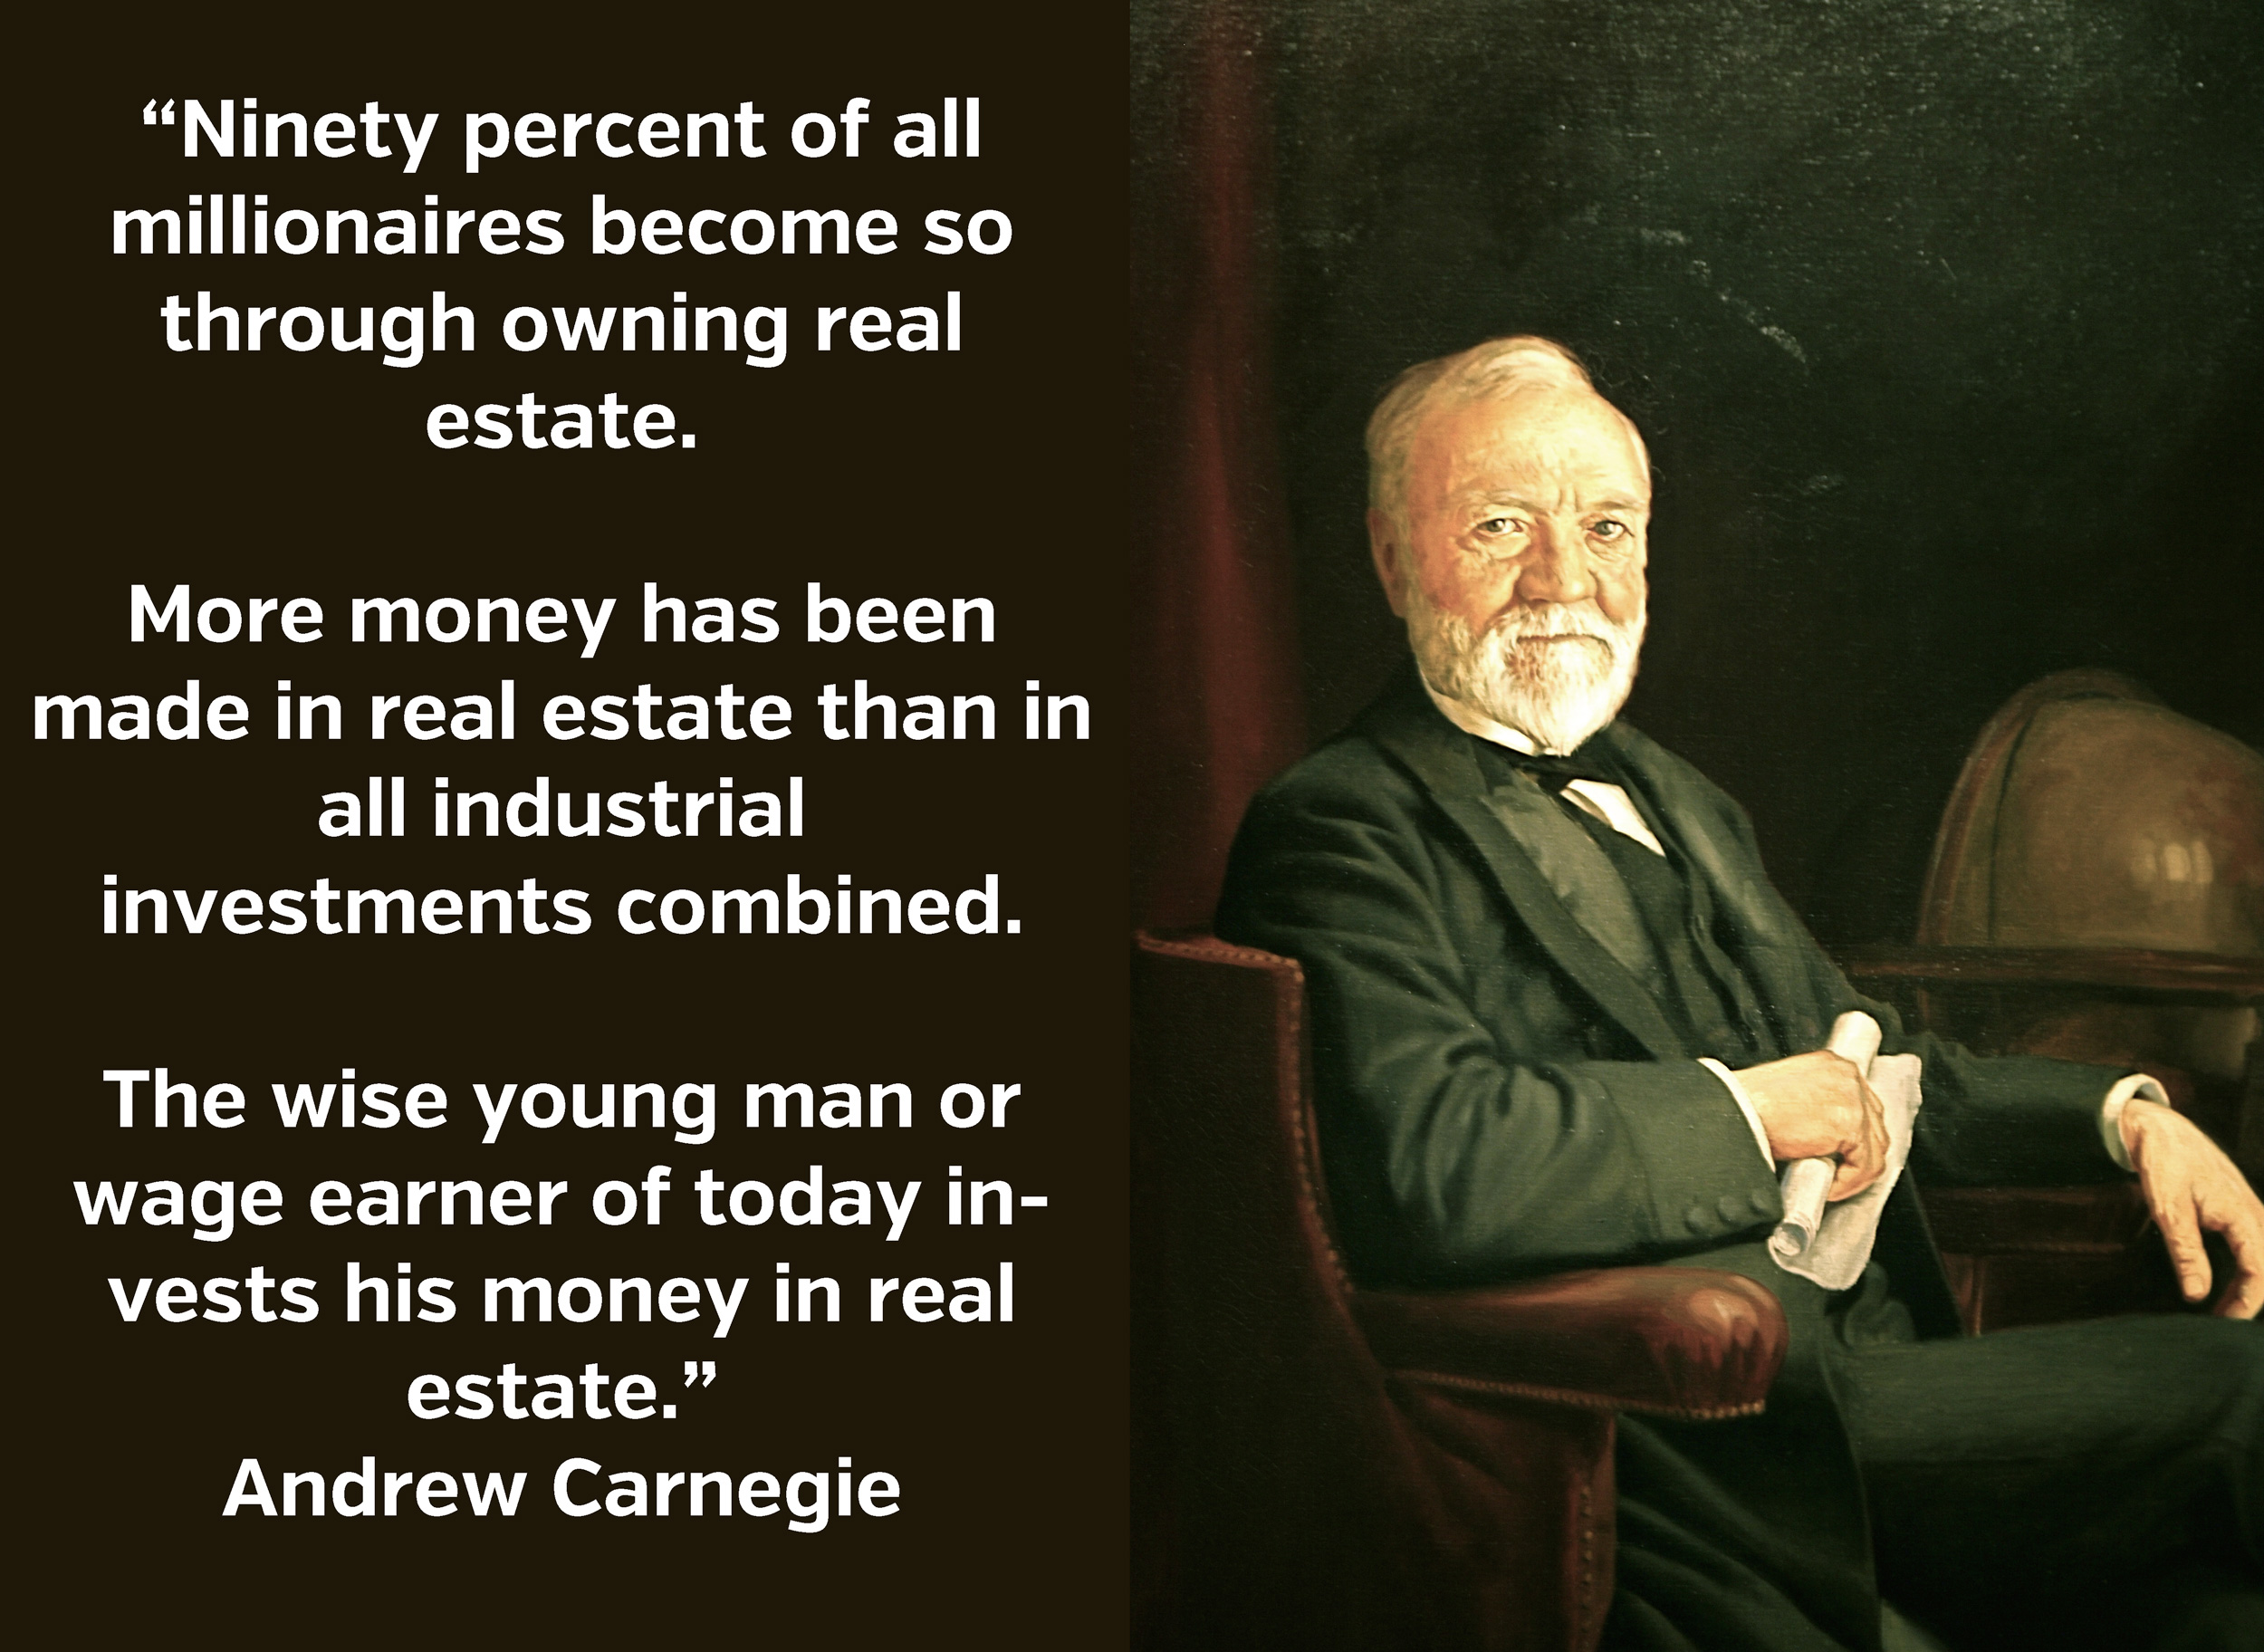 andrew carnegie and his advice on wealth It is only due to this that andrew carnegie had any wealth to pursue philanthropy who knows how many more millions of people would have been empowered had he kept his prodigious productive abilities in full gear.